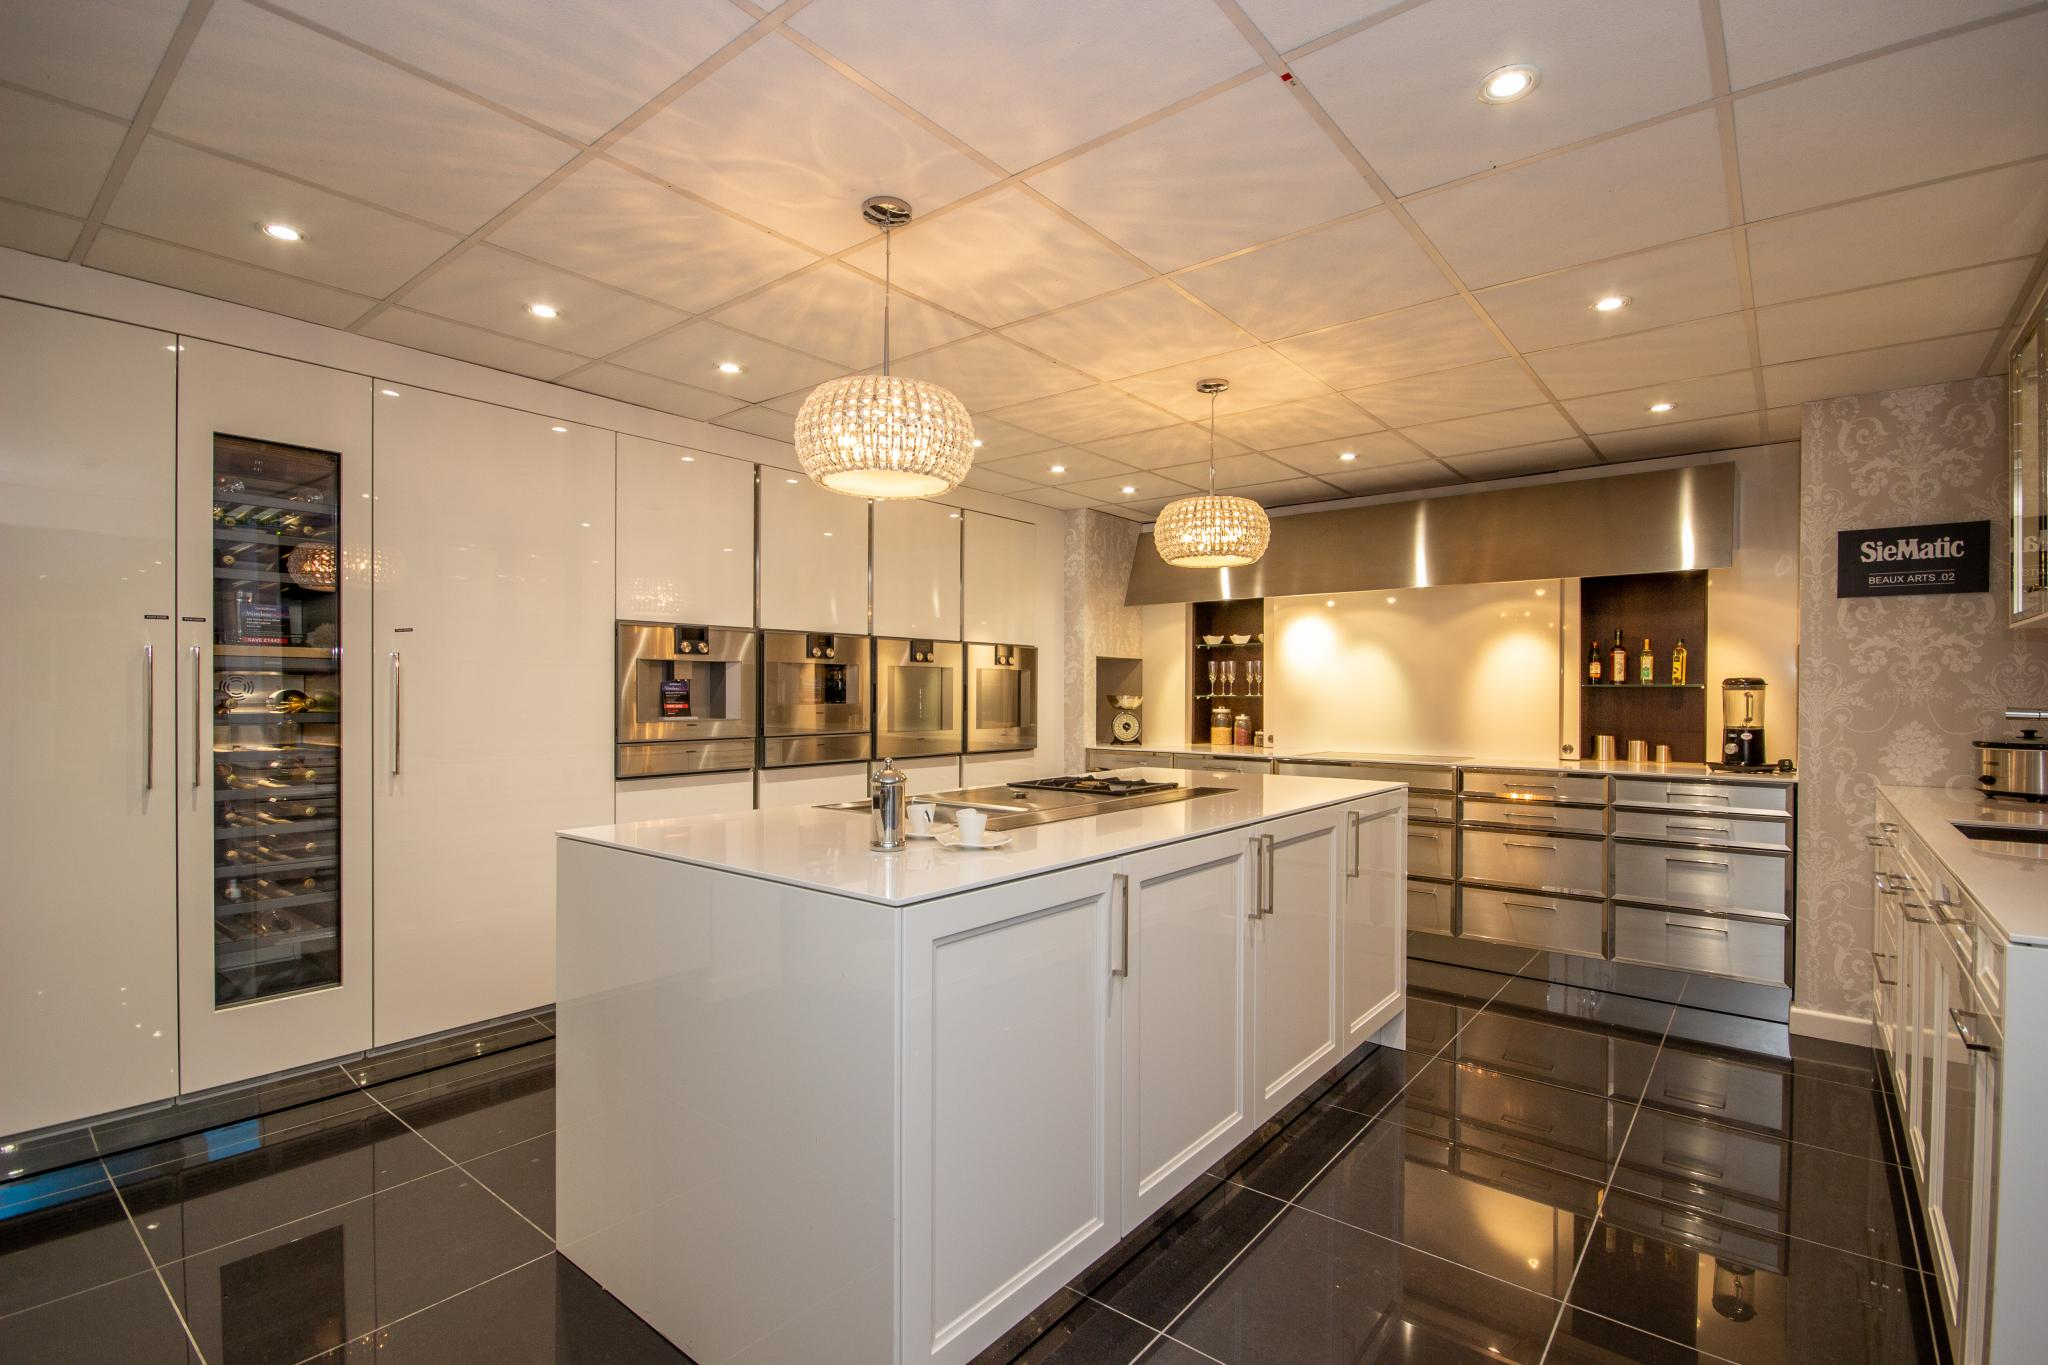 Over 80% off RRP £166,000+ SIEMATIC BeauxArts2 Ex Display Kitchen, LOTS of  Gaggenau Appliances, South